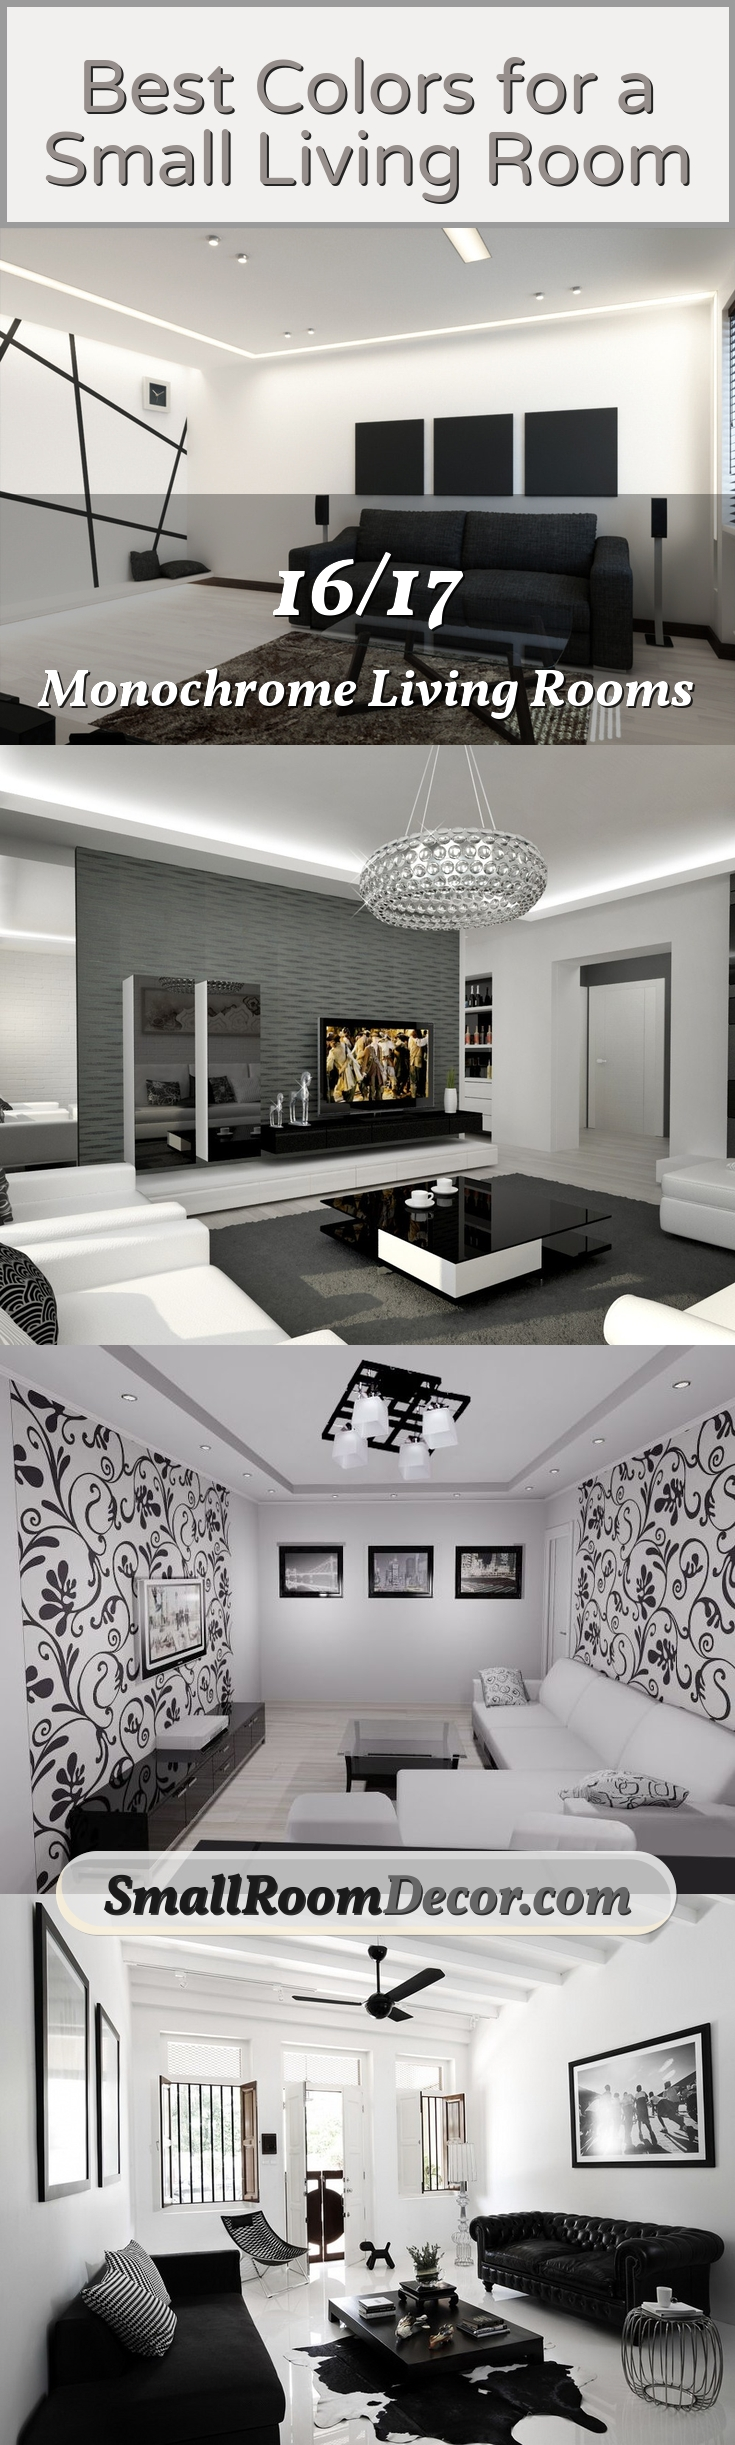 Monochrome living rooms #livingroomcolors